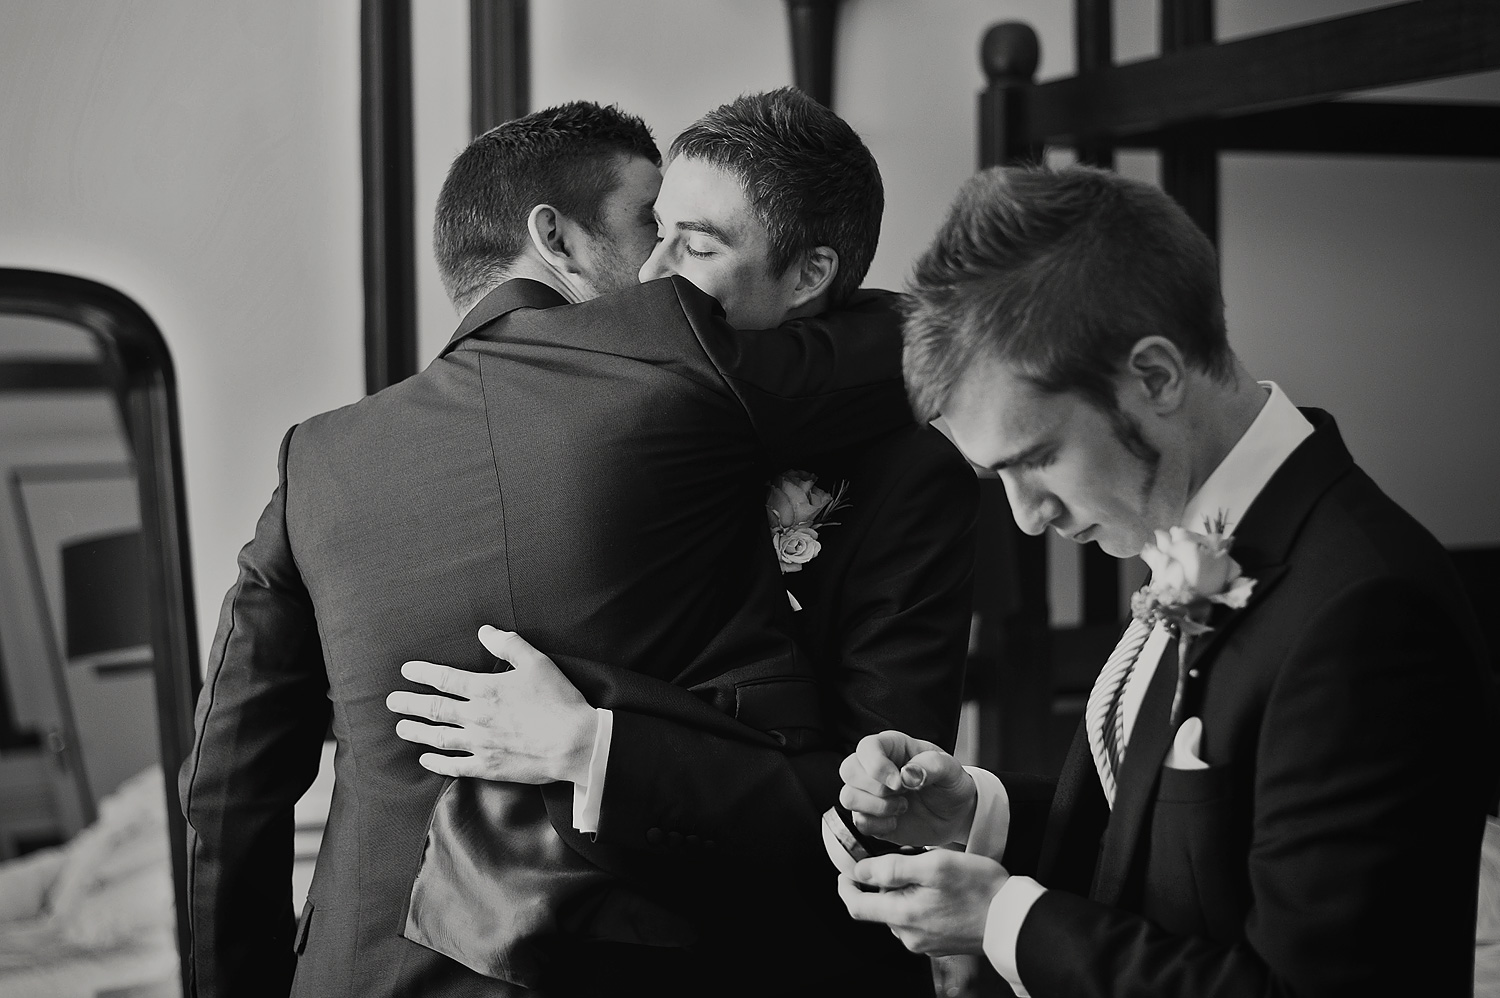 Black and white photos of Bestman checking the wedding rings whilst the groom embraces one of his groomsmen in the background.